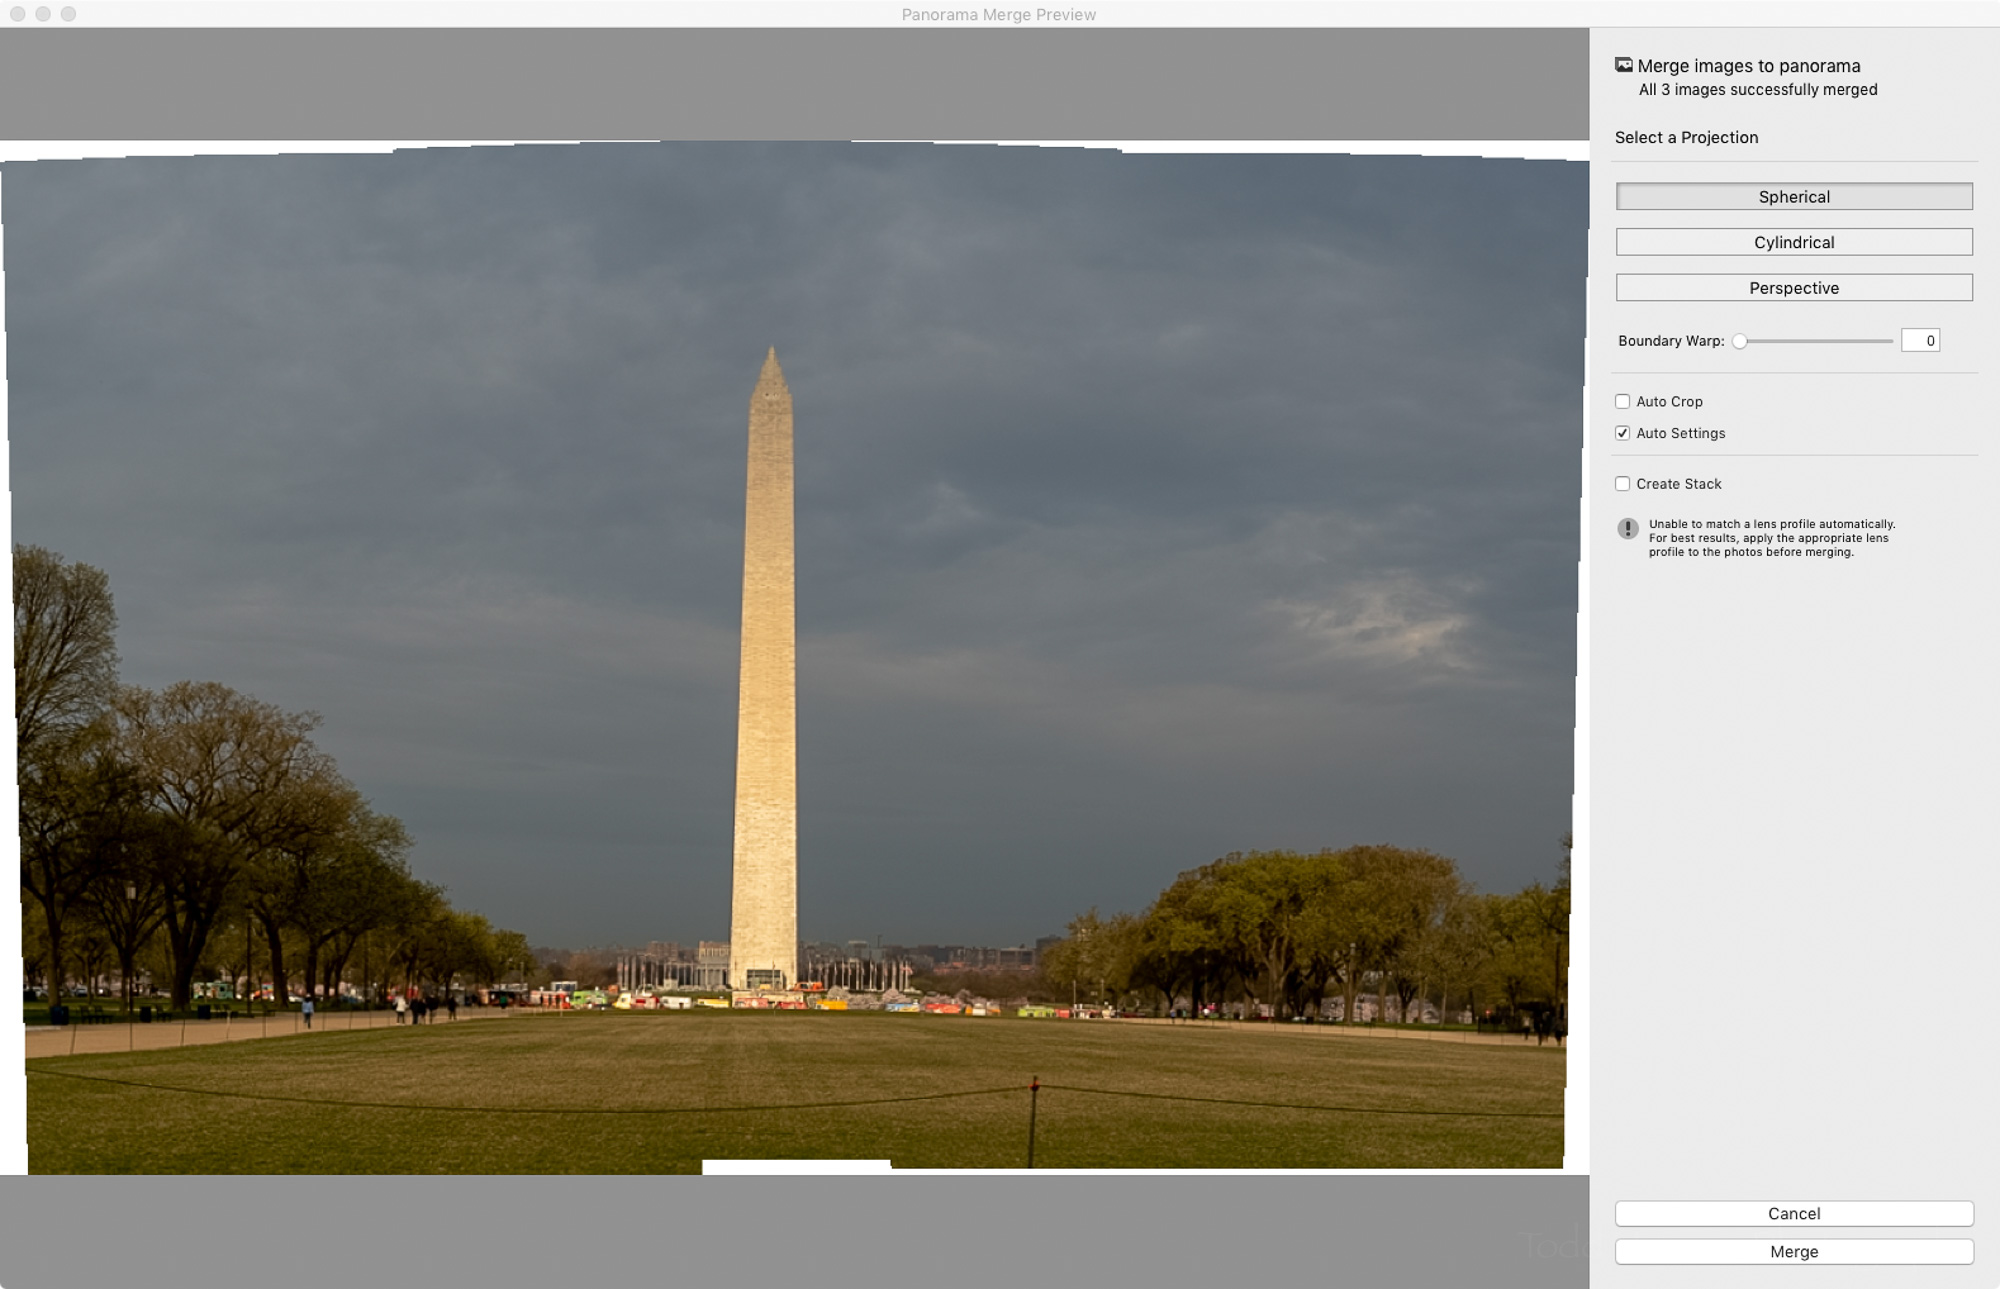 Panorama Merge Preview window in Adobe Lightroom.